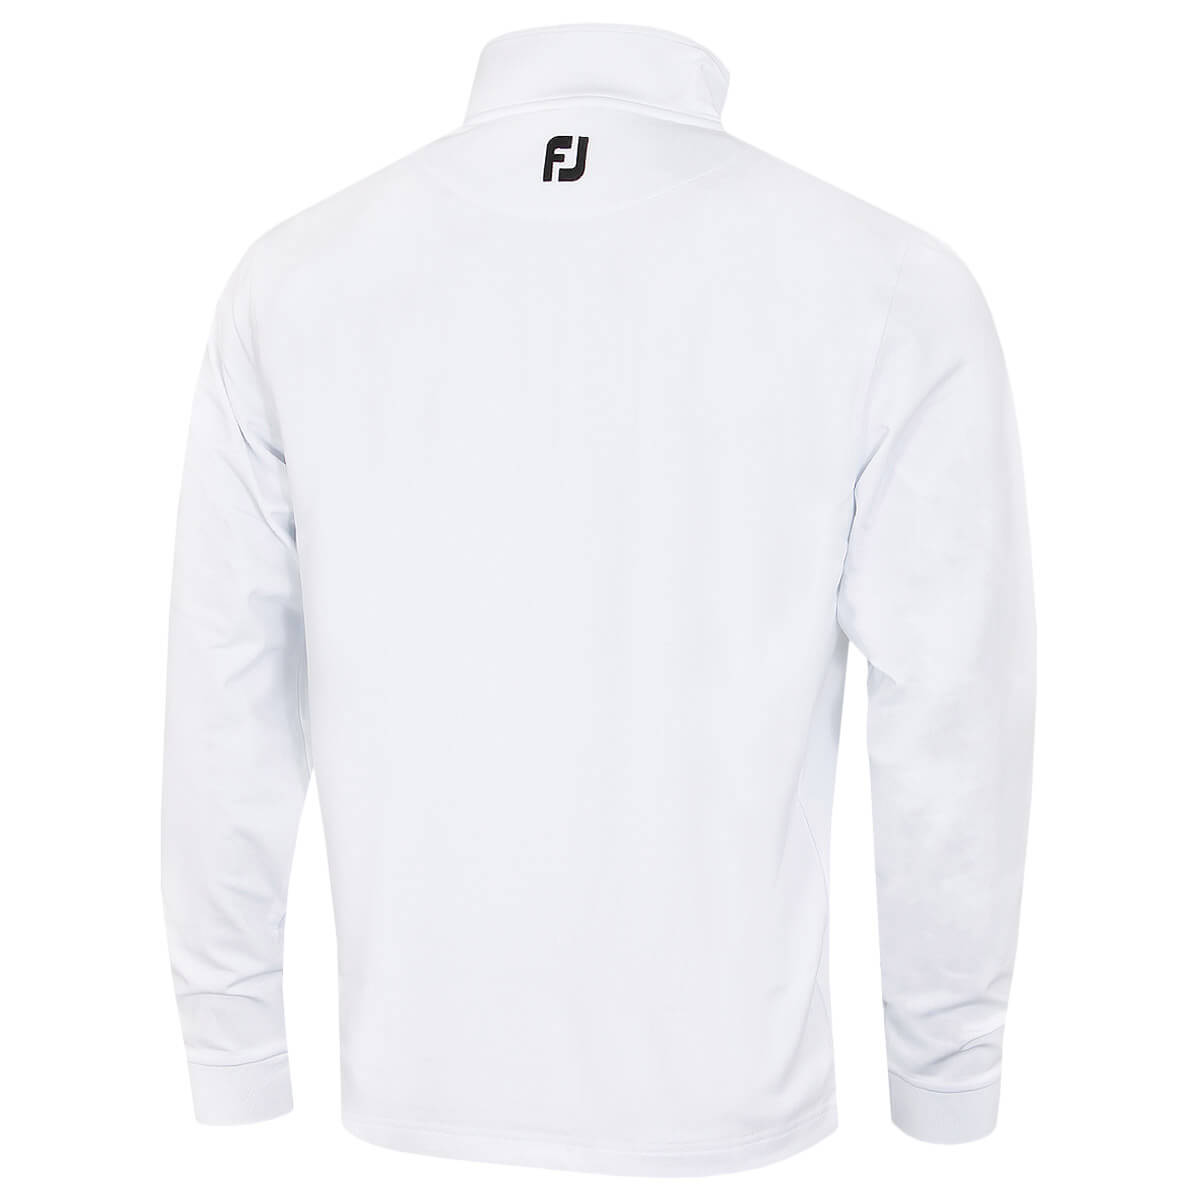 Footjoy-Mens-Jersey-Chest-Stripe-1-2-Zip-Wicking-Golf-Sweater-51-OFF-RRP thumbnail 6